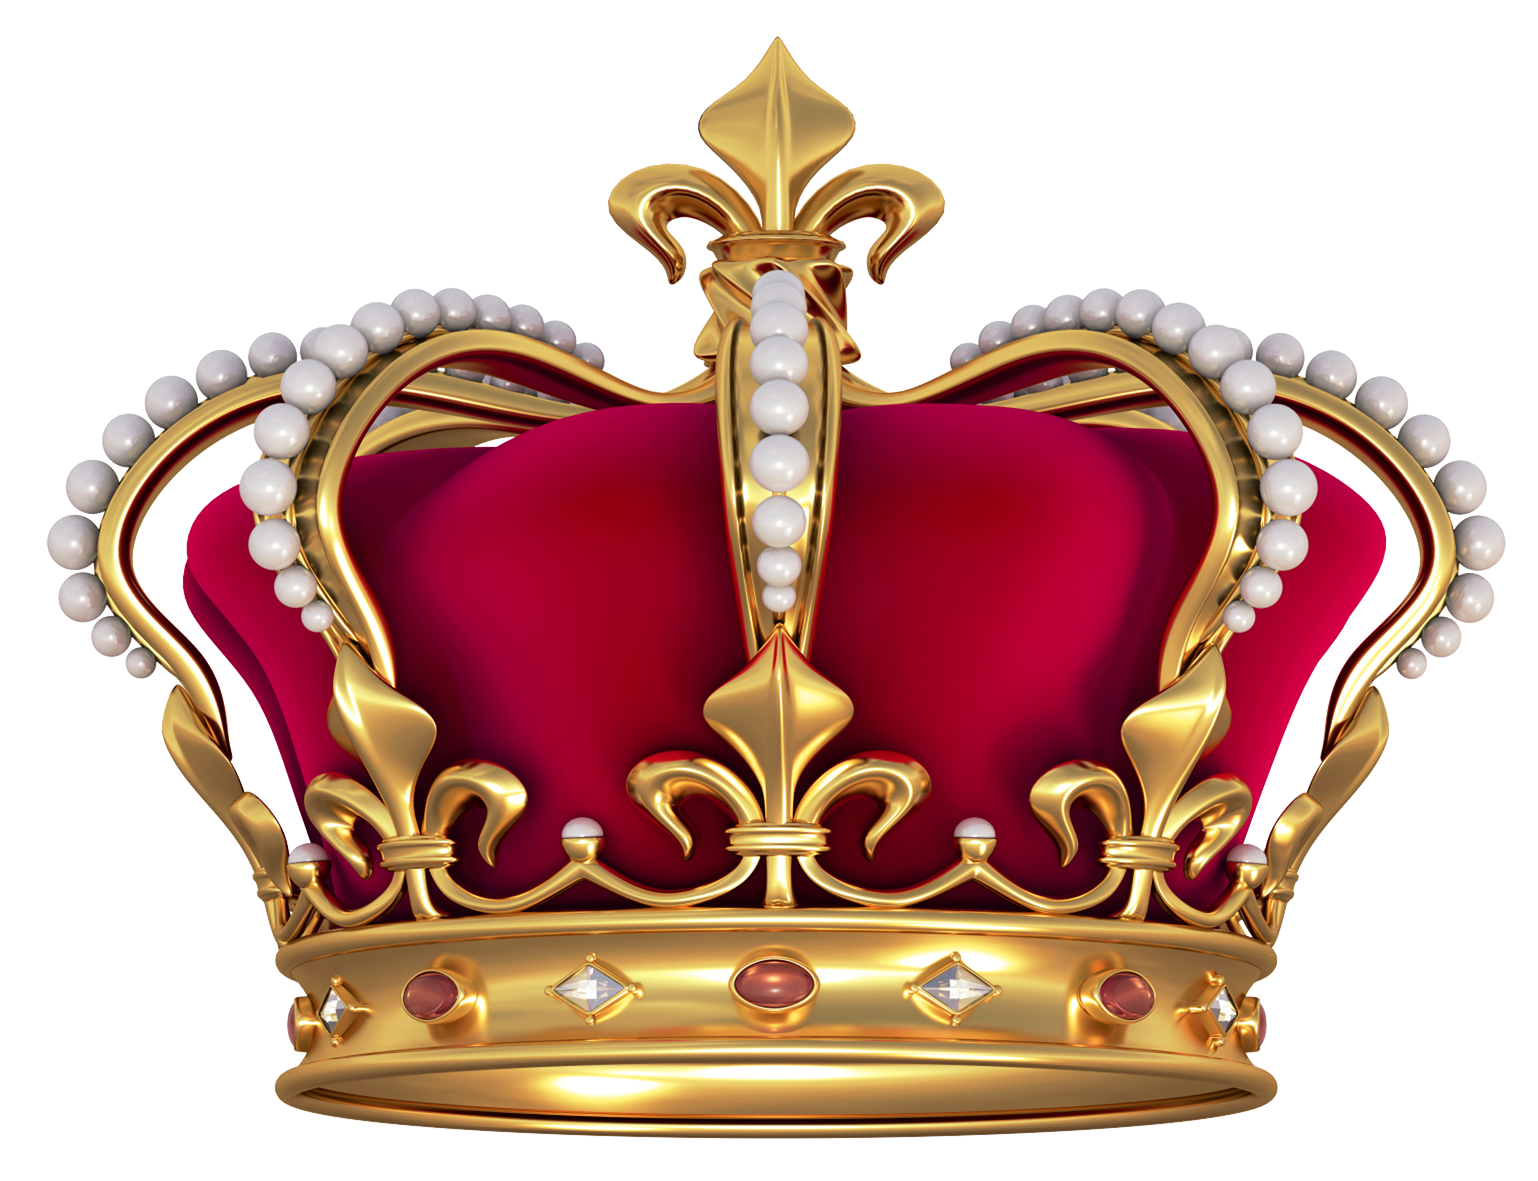 Gold Crown Throw Pillow : Red Gold Crown with Pearls PNG Clipart Picture Crafting - Regal Theme Pinterest Gold crown ...